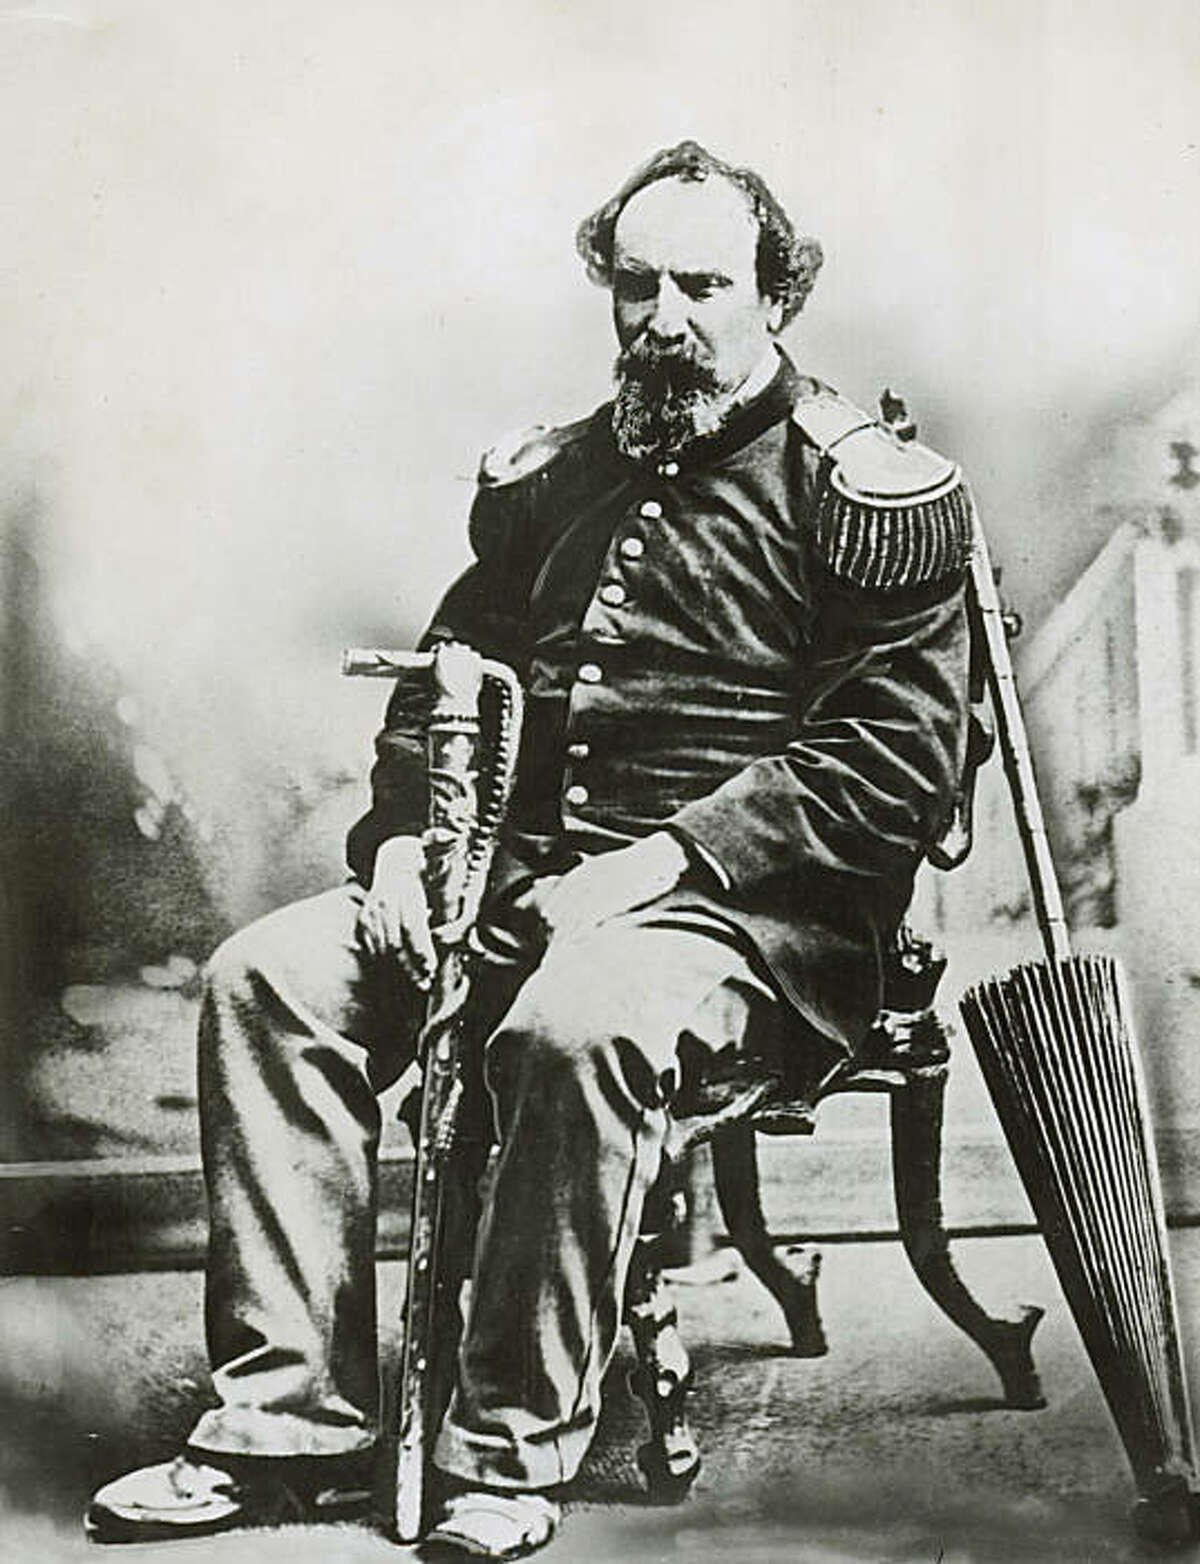 norton_1.JPG June 29, 1959- Emperor Norton- Emperor of the United States and Protector of Mexico. /staff photographer